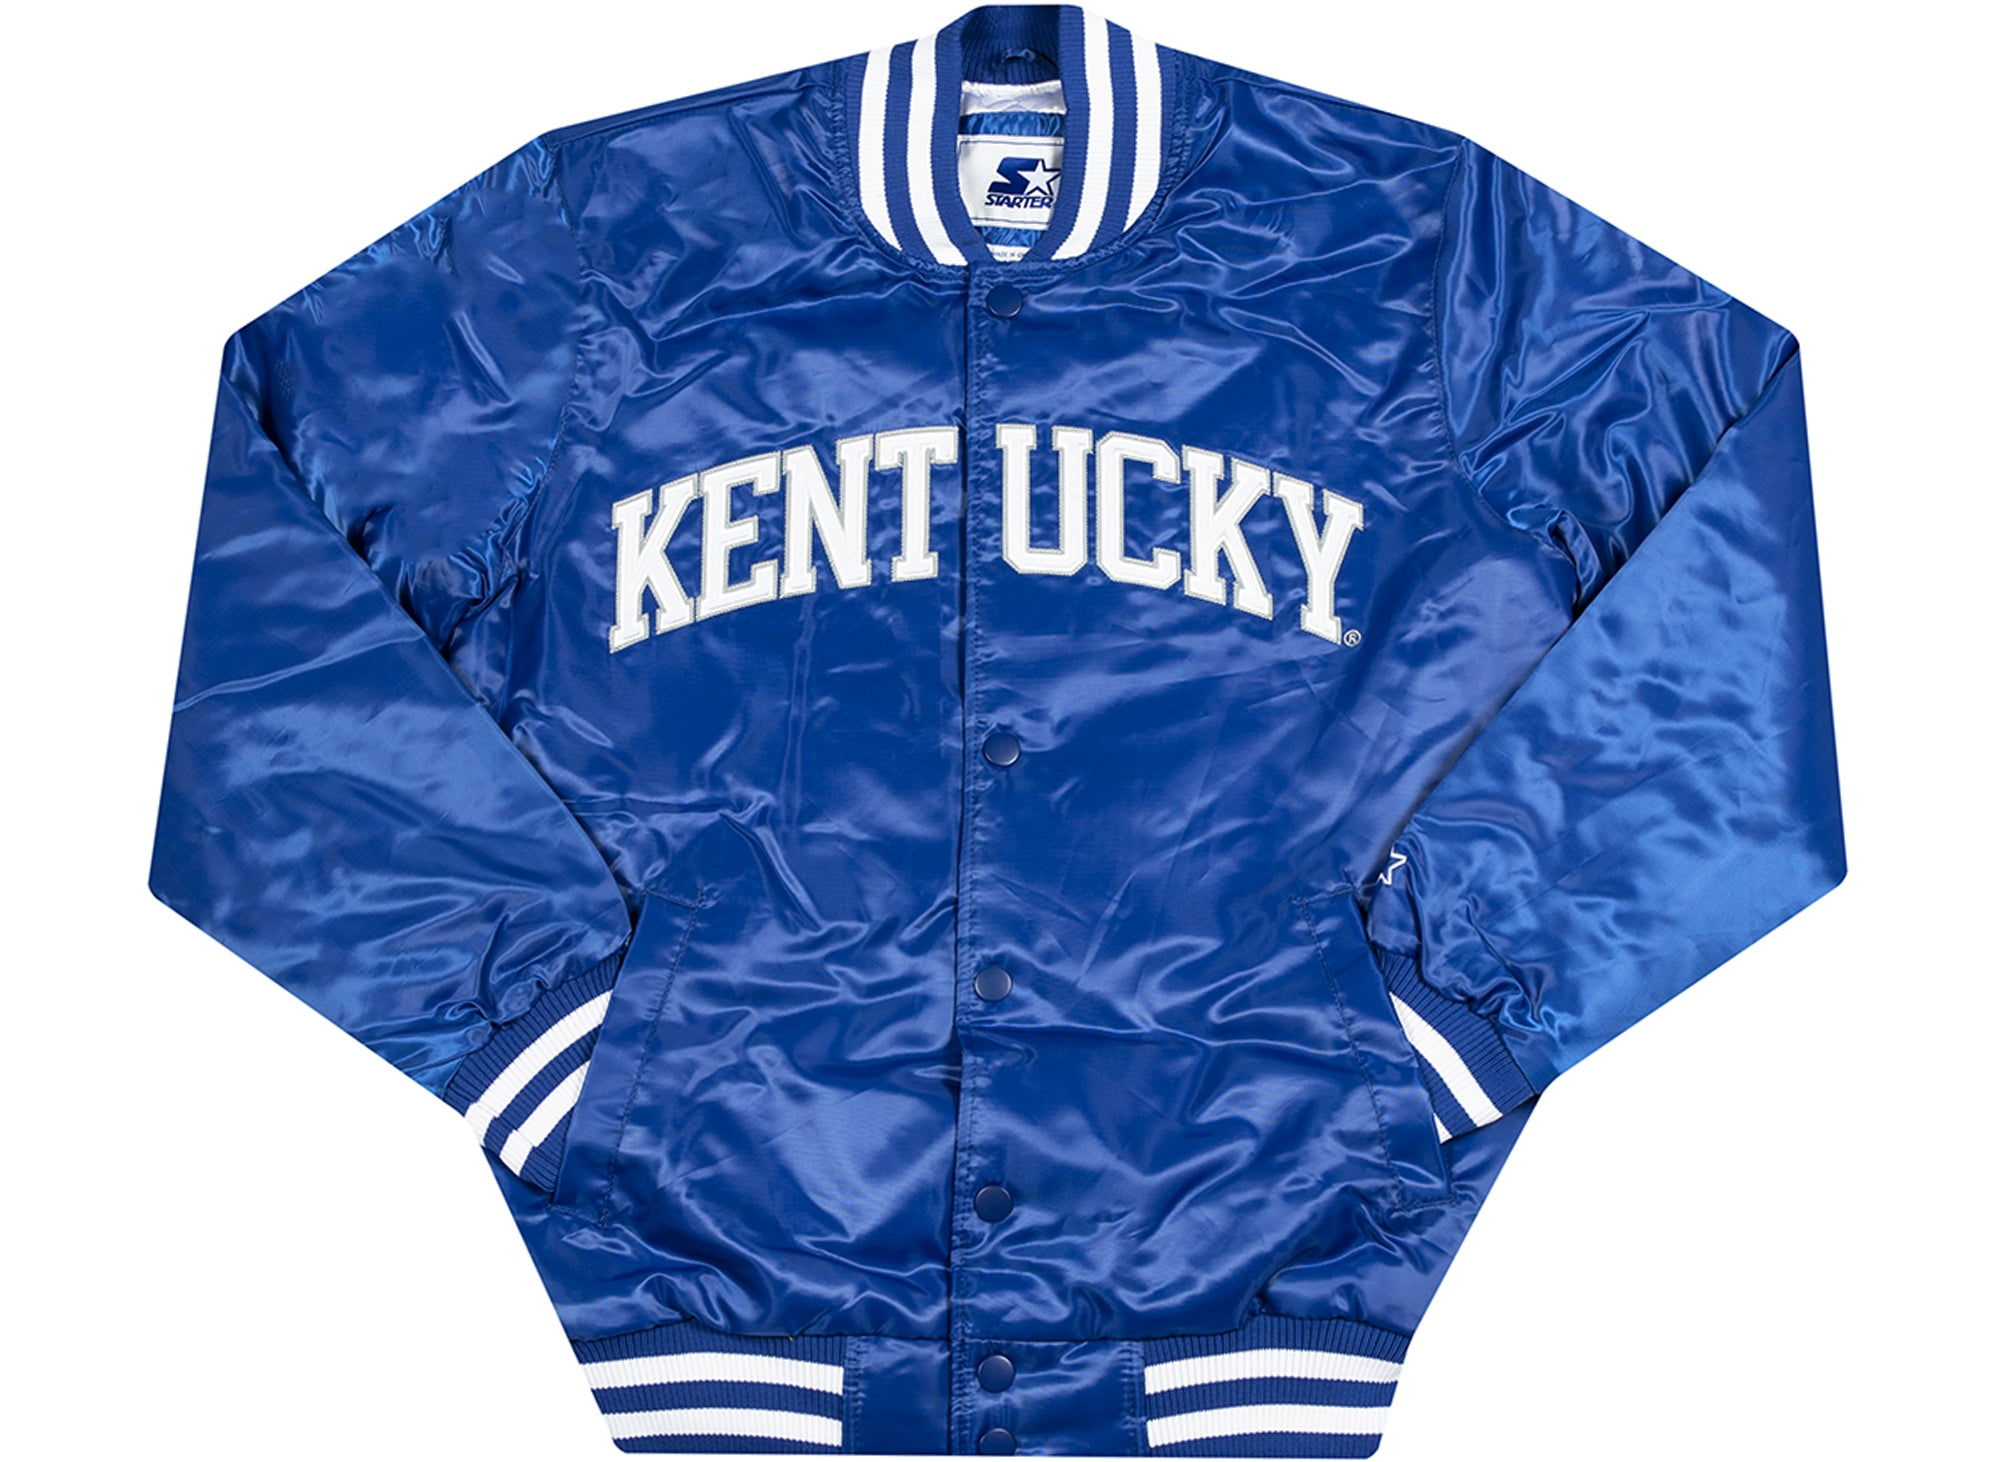 Starter x Oneness University of Kentucky Jacket in Blue